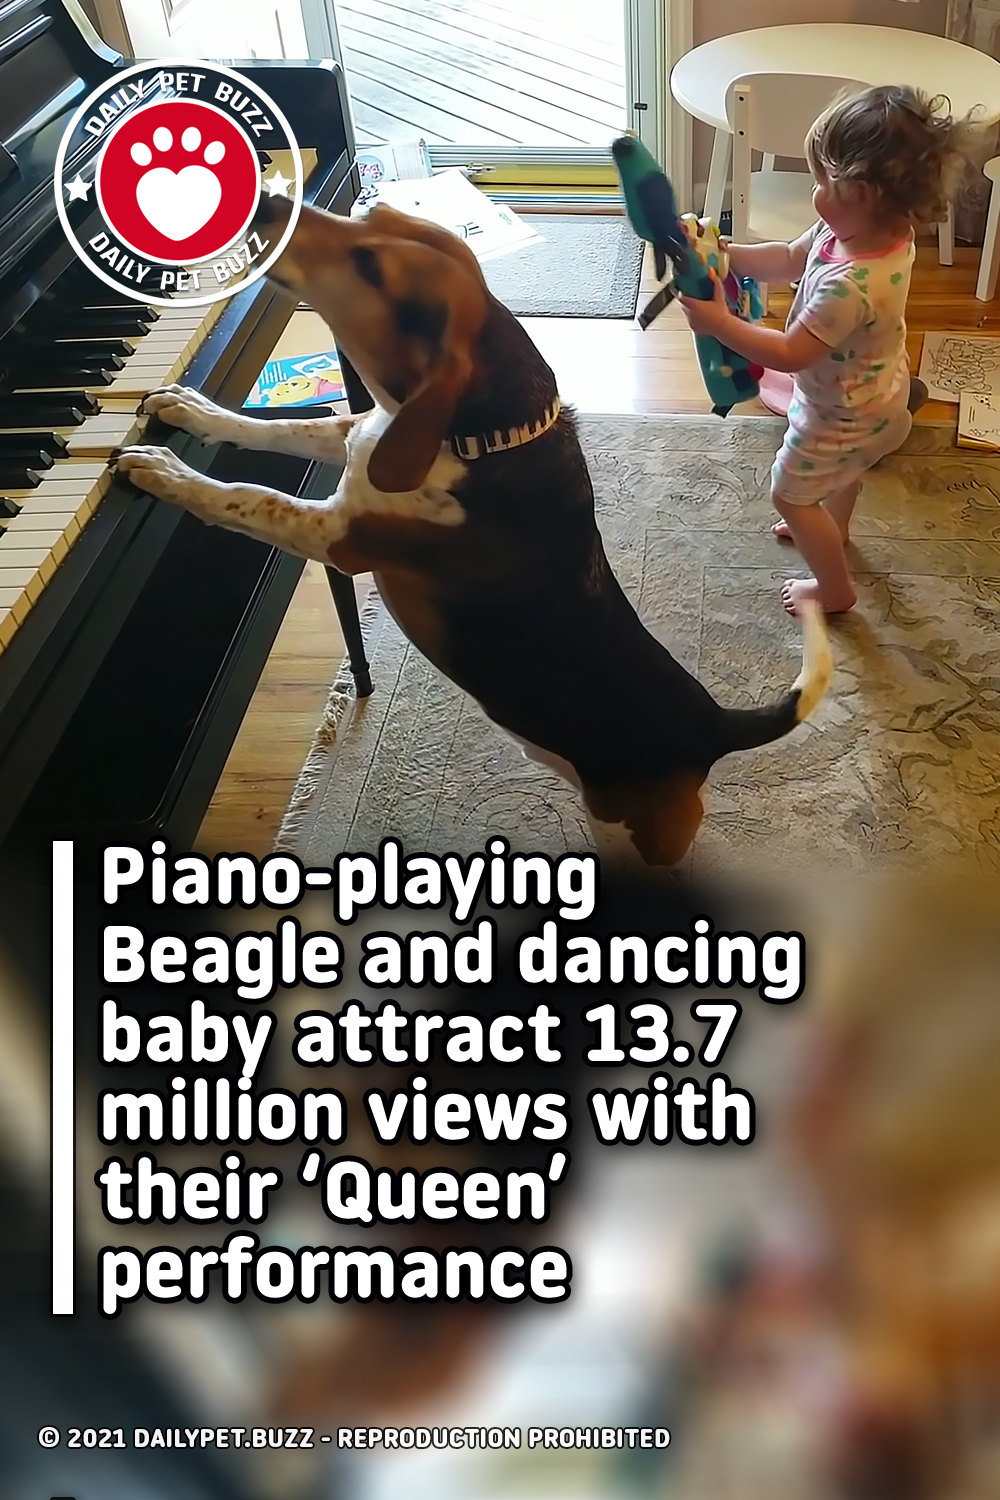 Piano-playing Beagle and dancing baby attract 13.7 million views with their 'Queen' performance